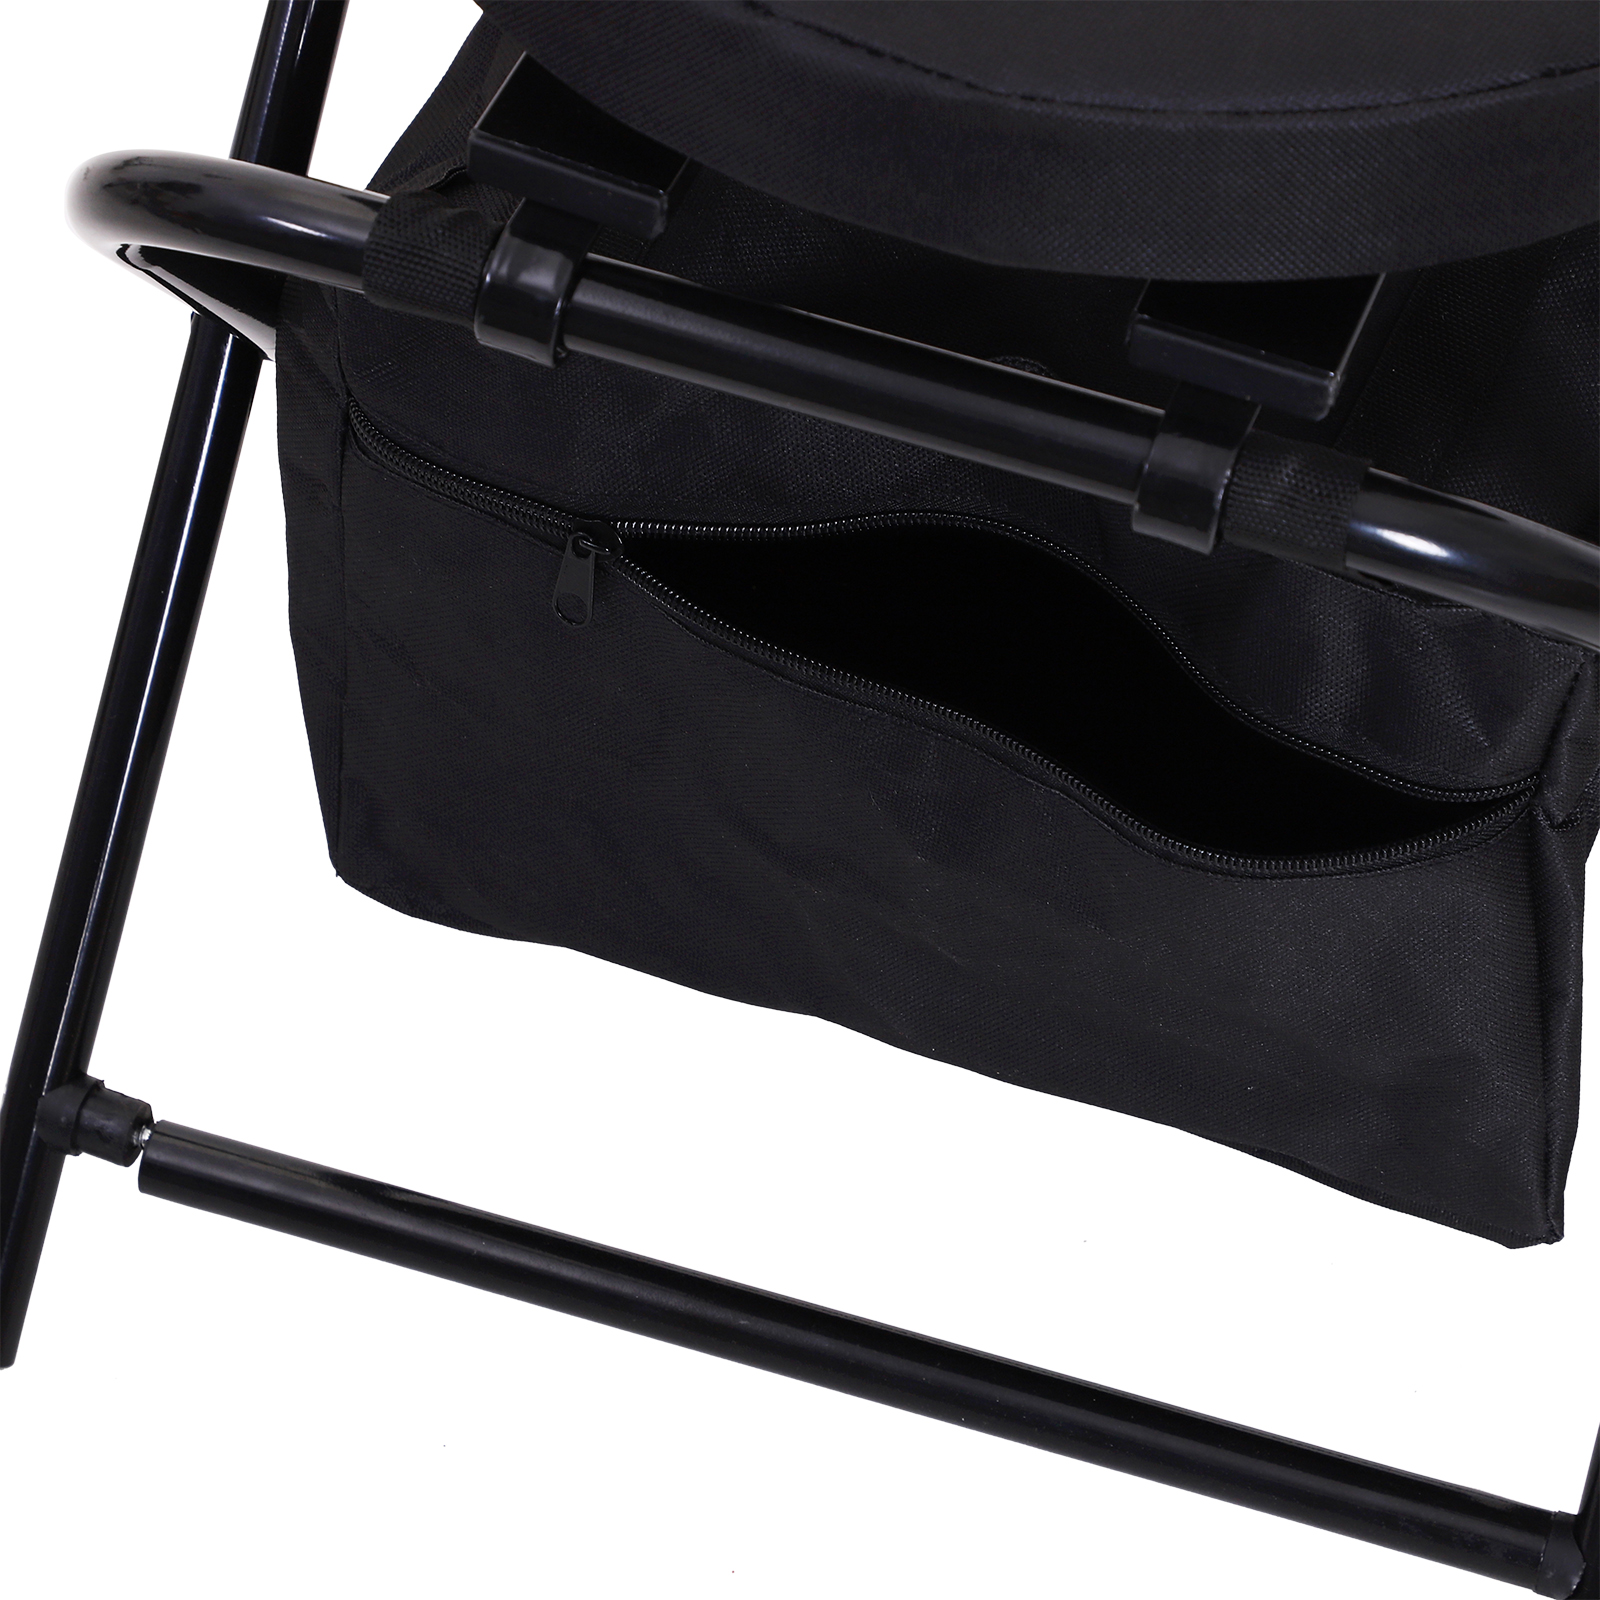 Outsunny-Folding-Rotating-Travel-Camping-Stool-for-Adults-w-Storage-Bag thumbnail 7